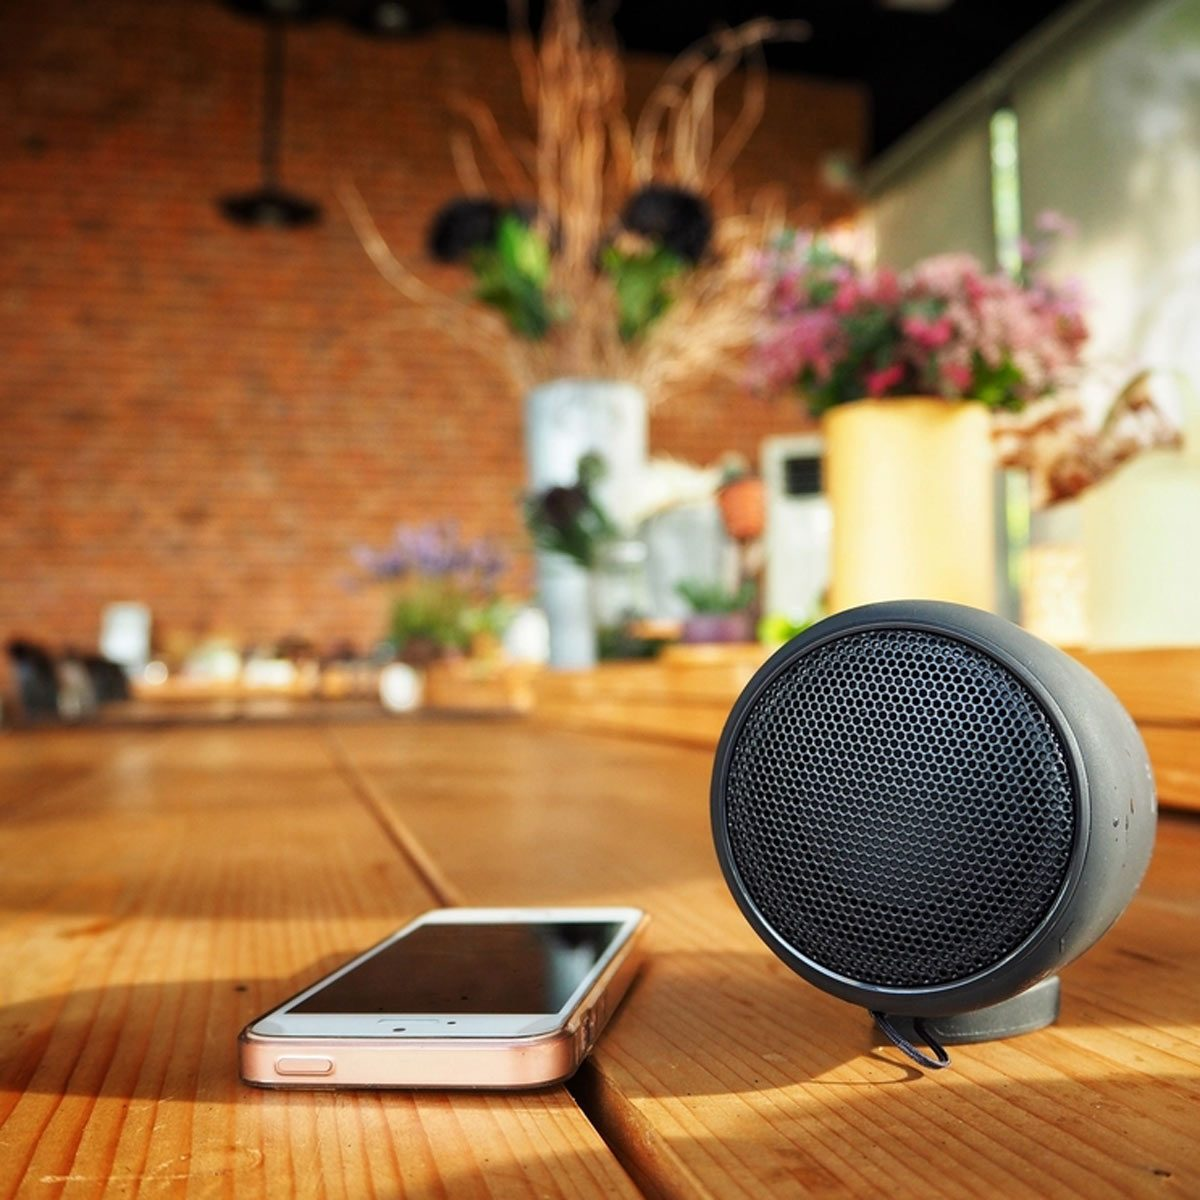 dfh12_shutterstock_675662026 phone bluetooth speaker